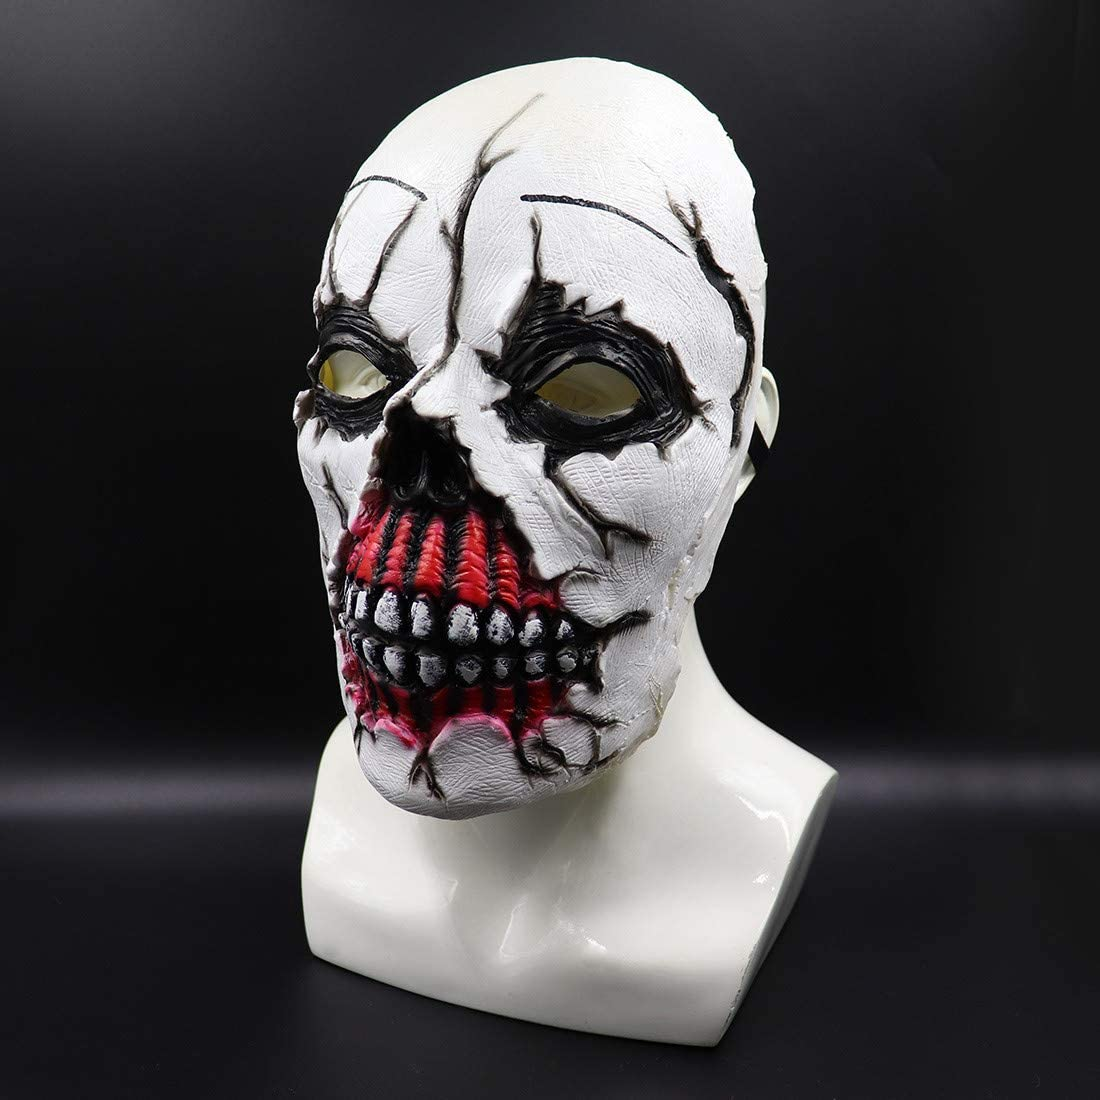 Scary Party Decorations Gifts Halloween Costume Bloody Zombie Mask Latex Toys